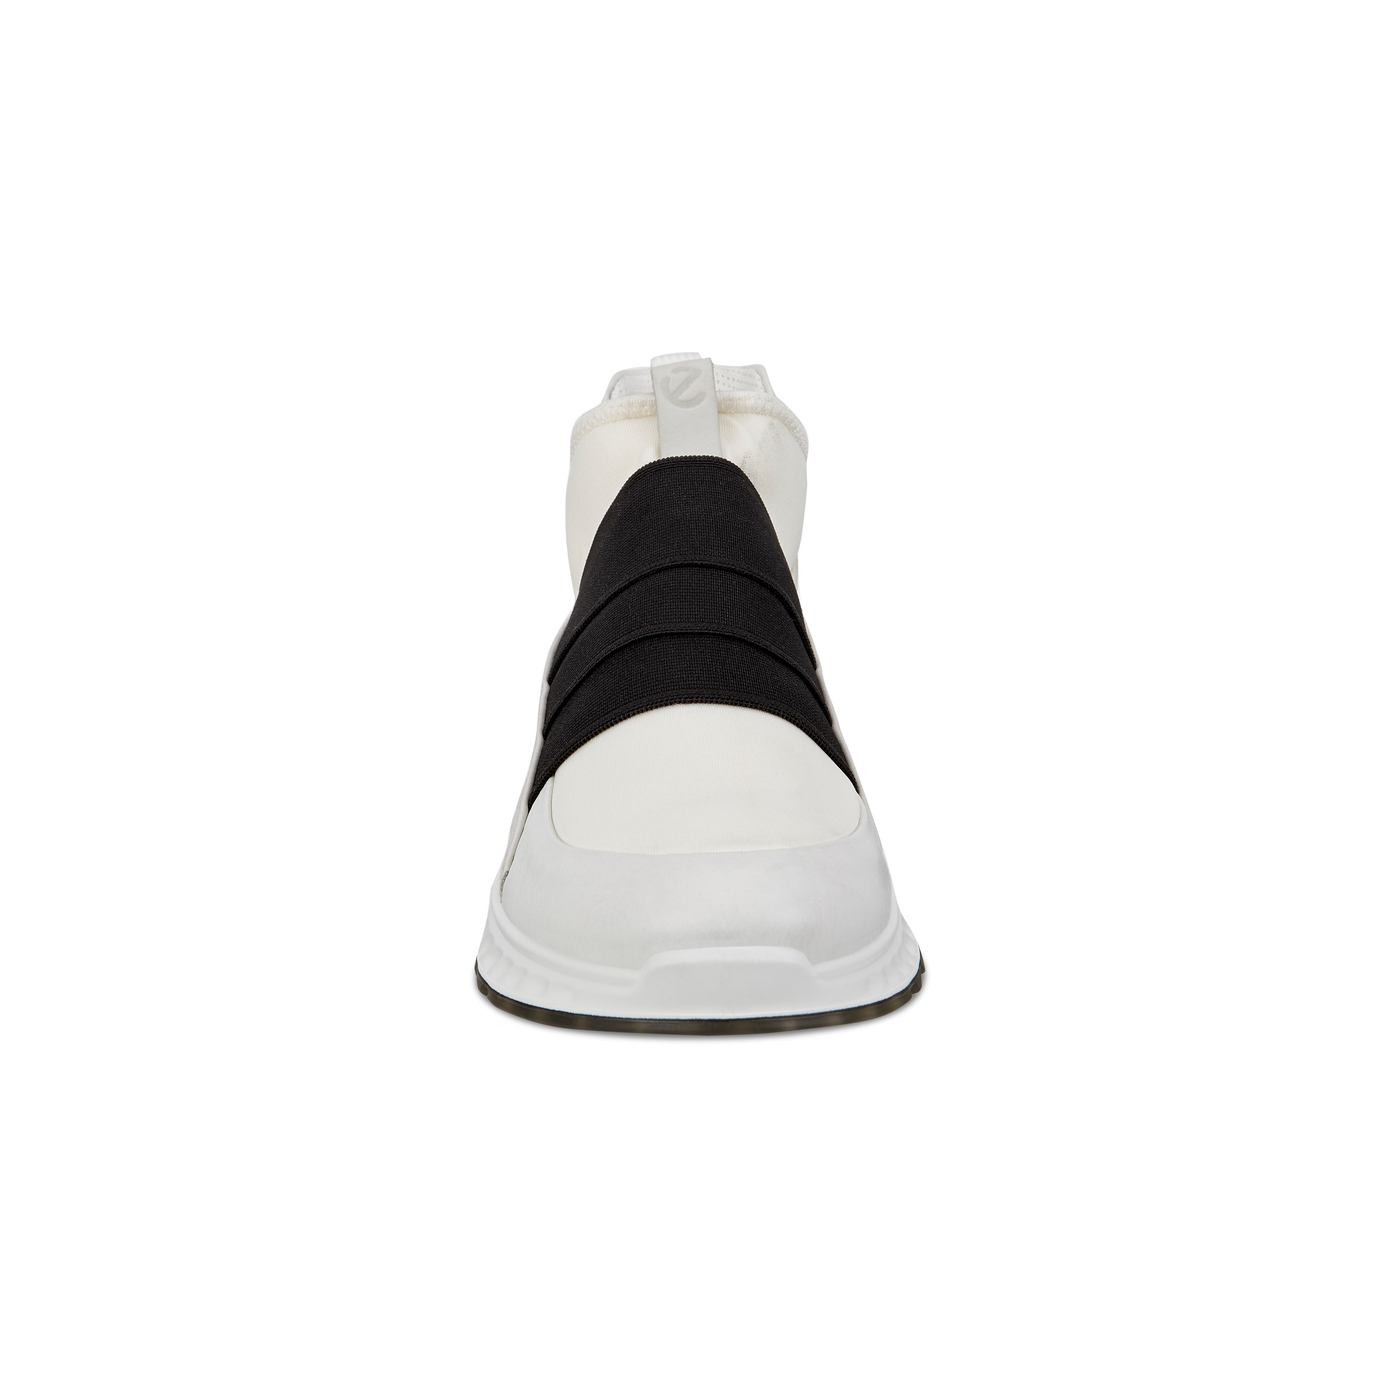 ECCO ST1 Womens Sneaker Slip-on